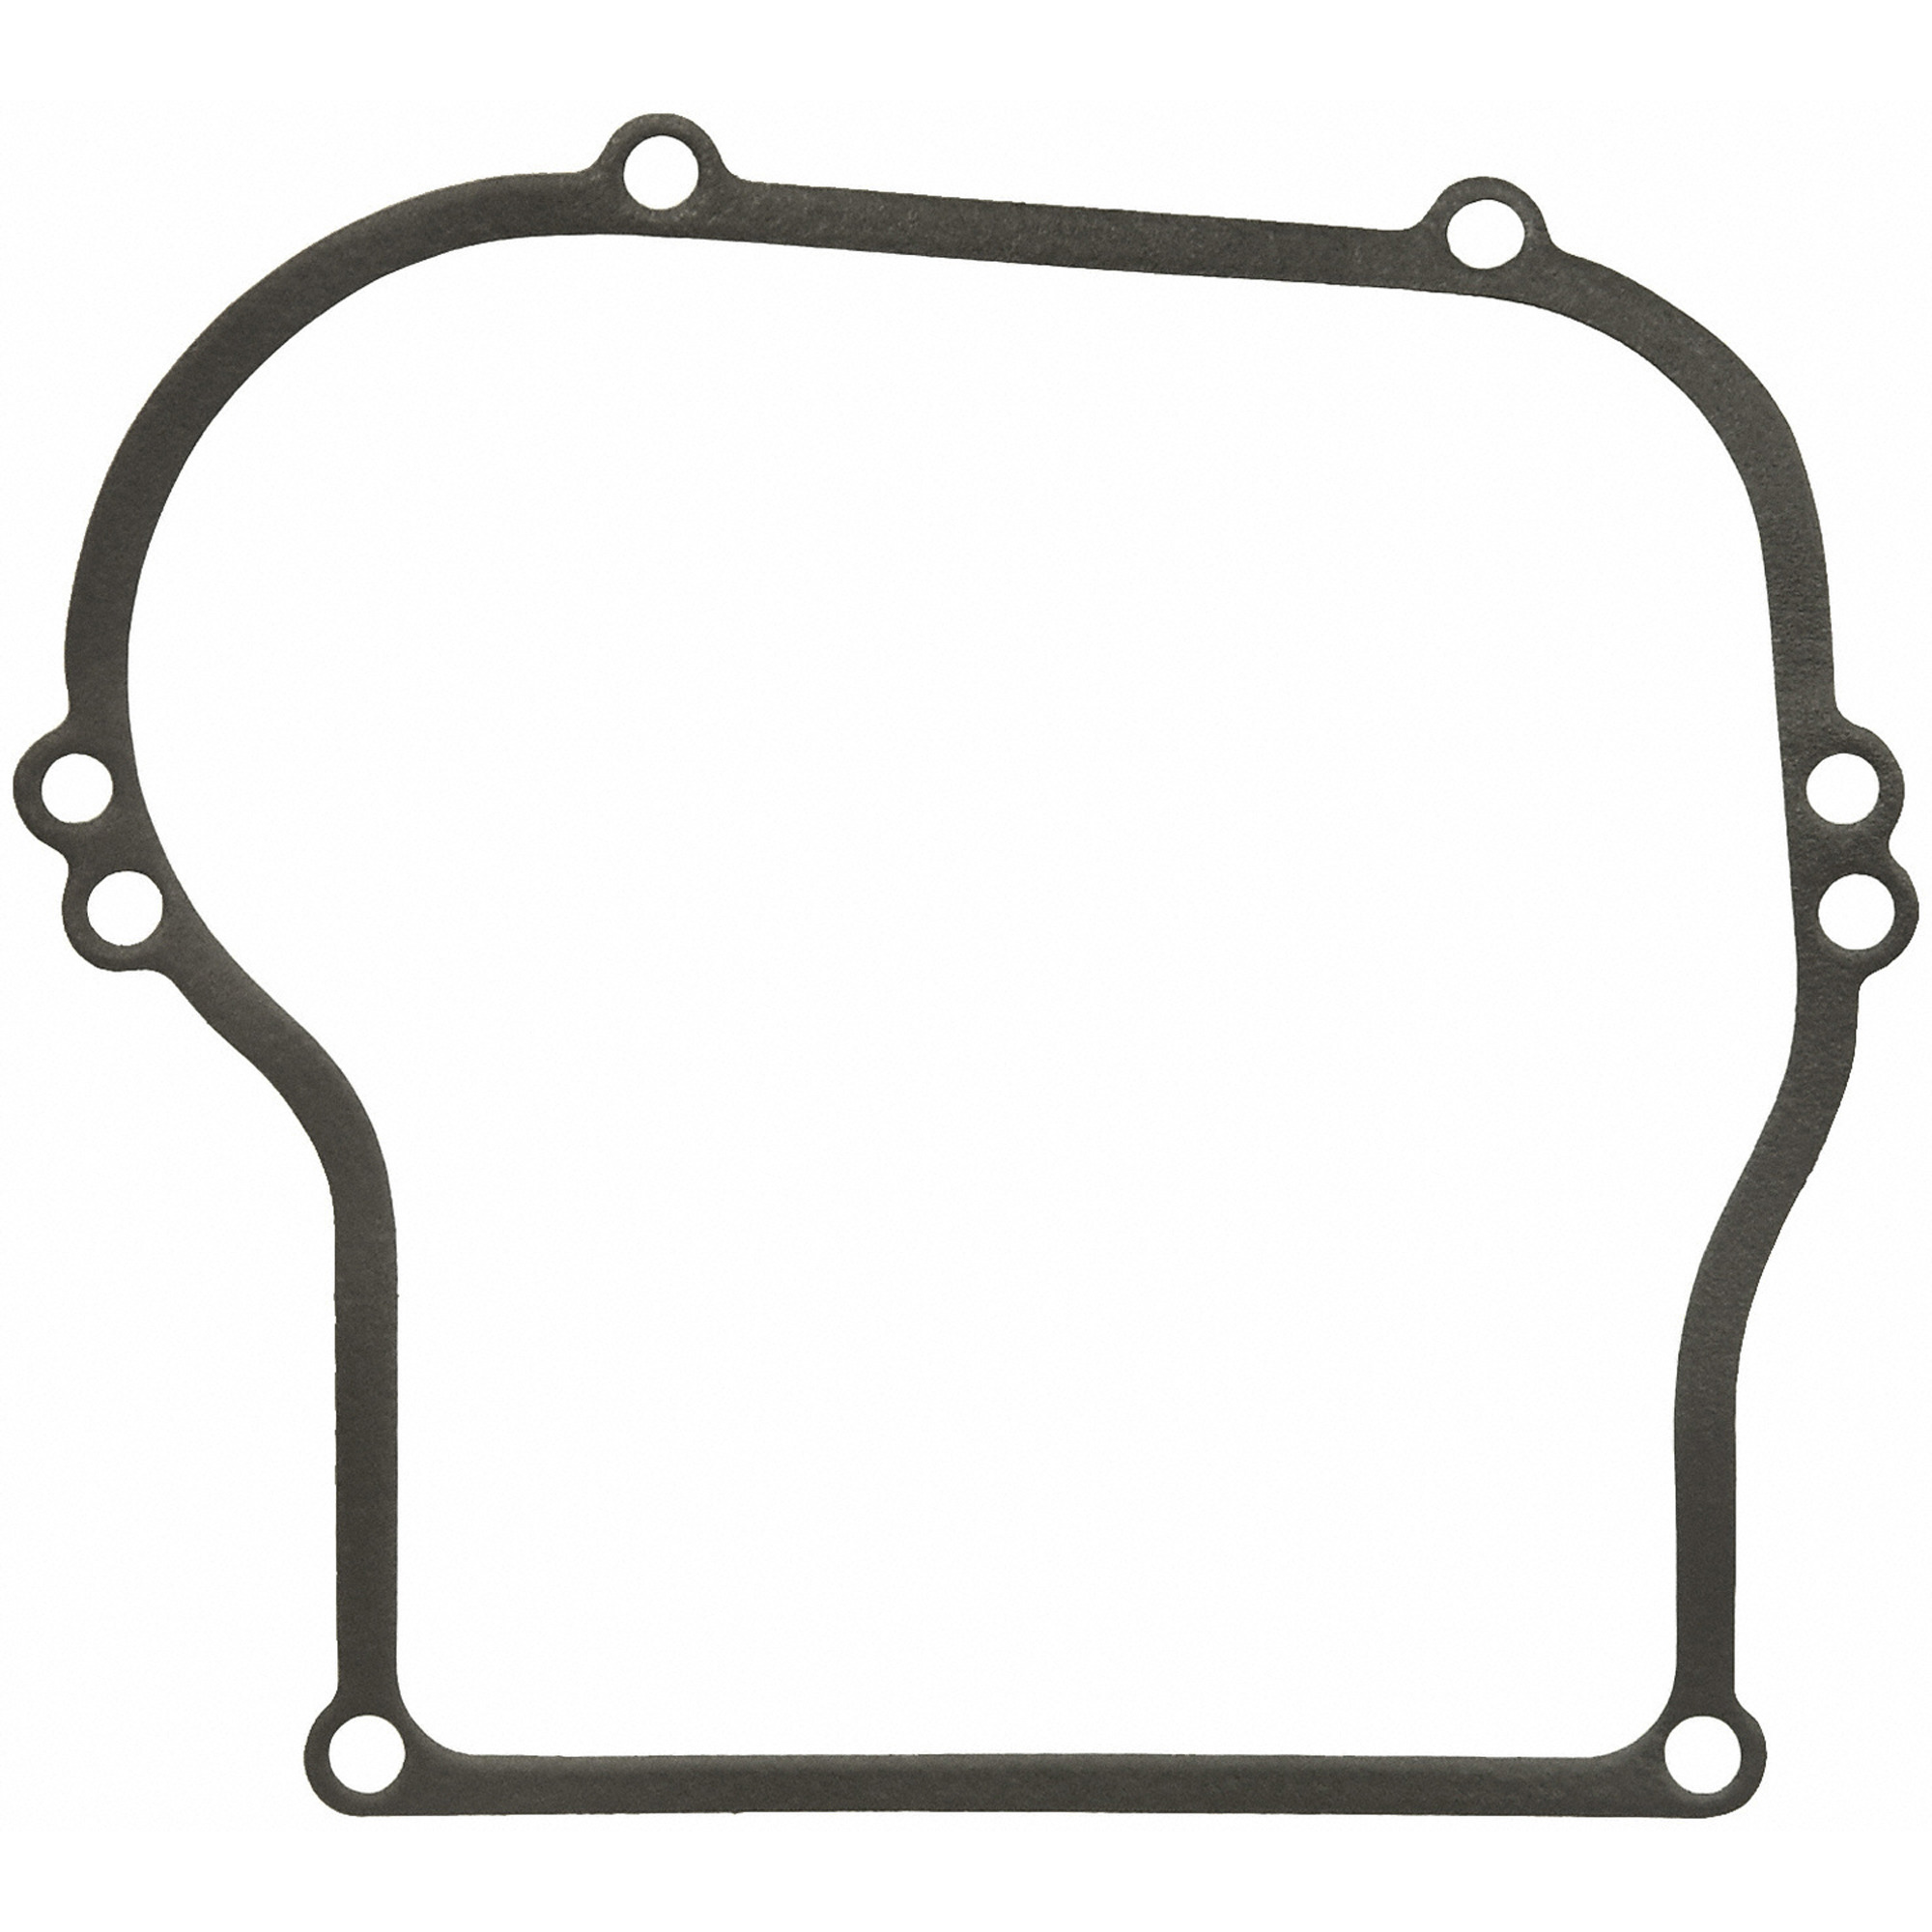 Engine Crankcase Cover Gasket Set